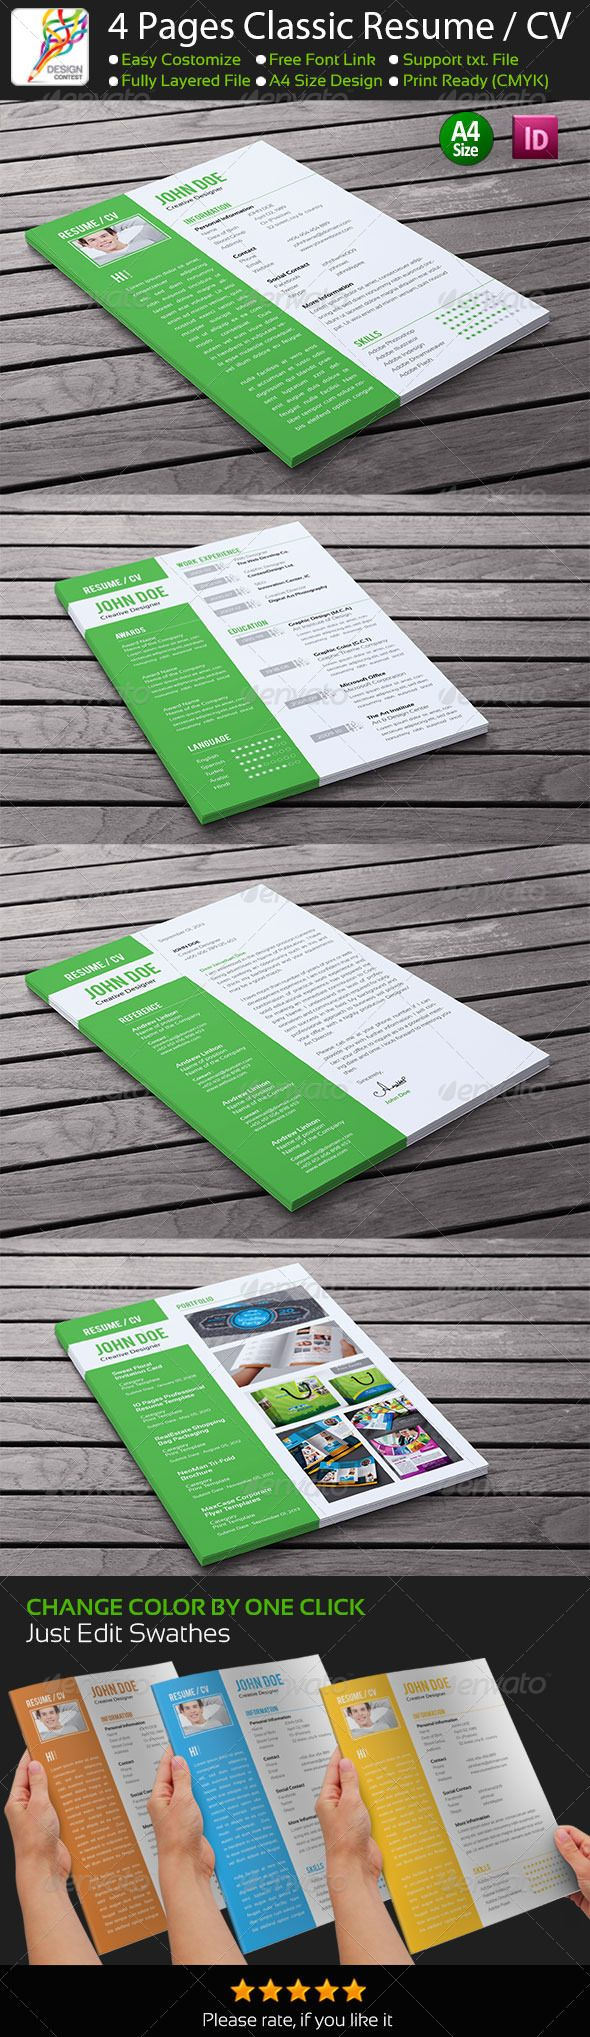 31 best images about resume on pinterest corporate id behance